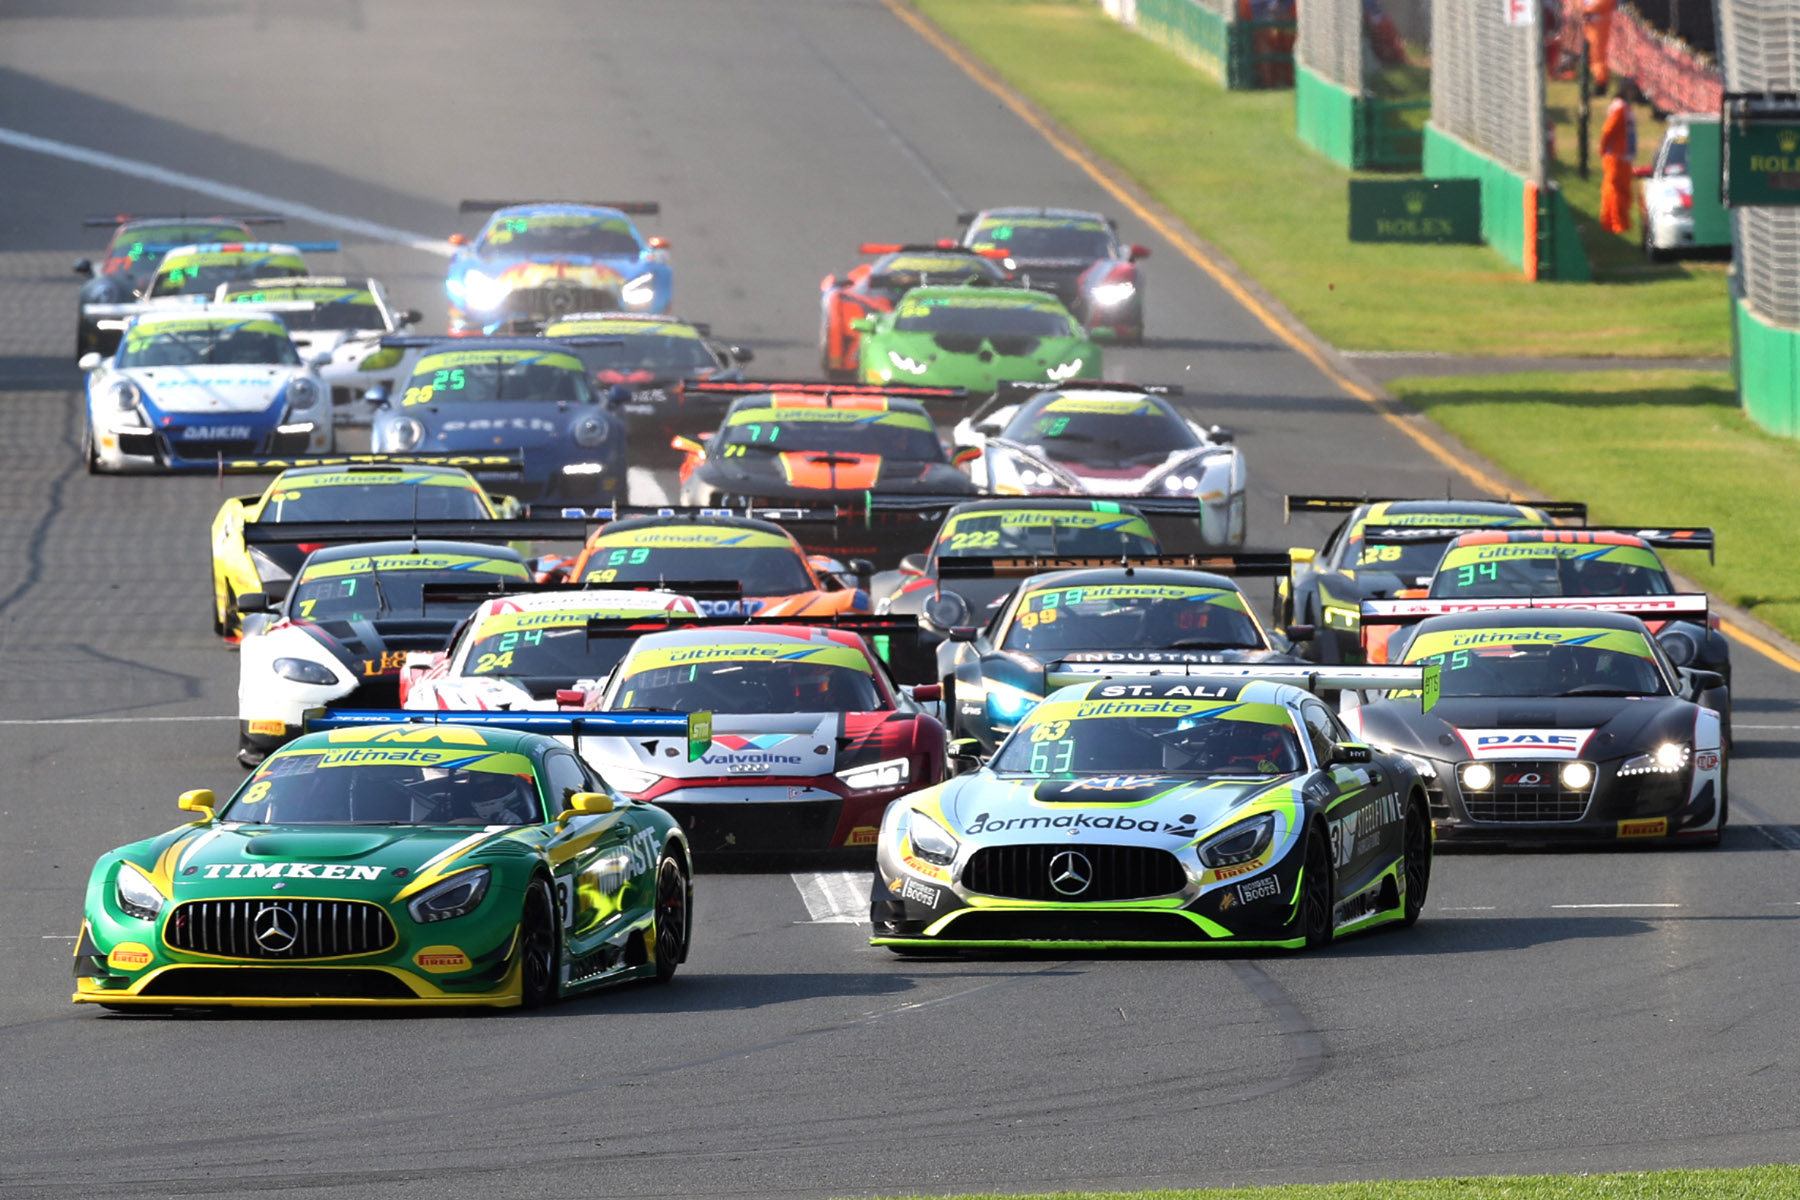 Hackett takes #63 Mercedes-AMG to maiden Australian Grand Prix win